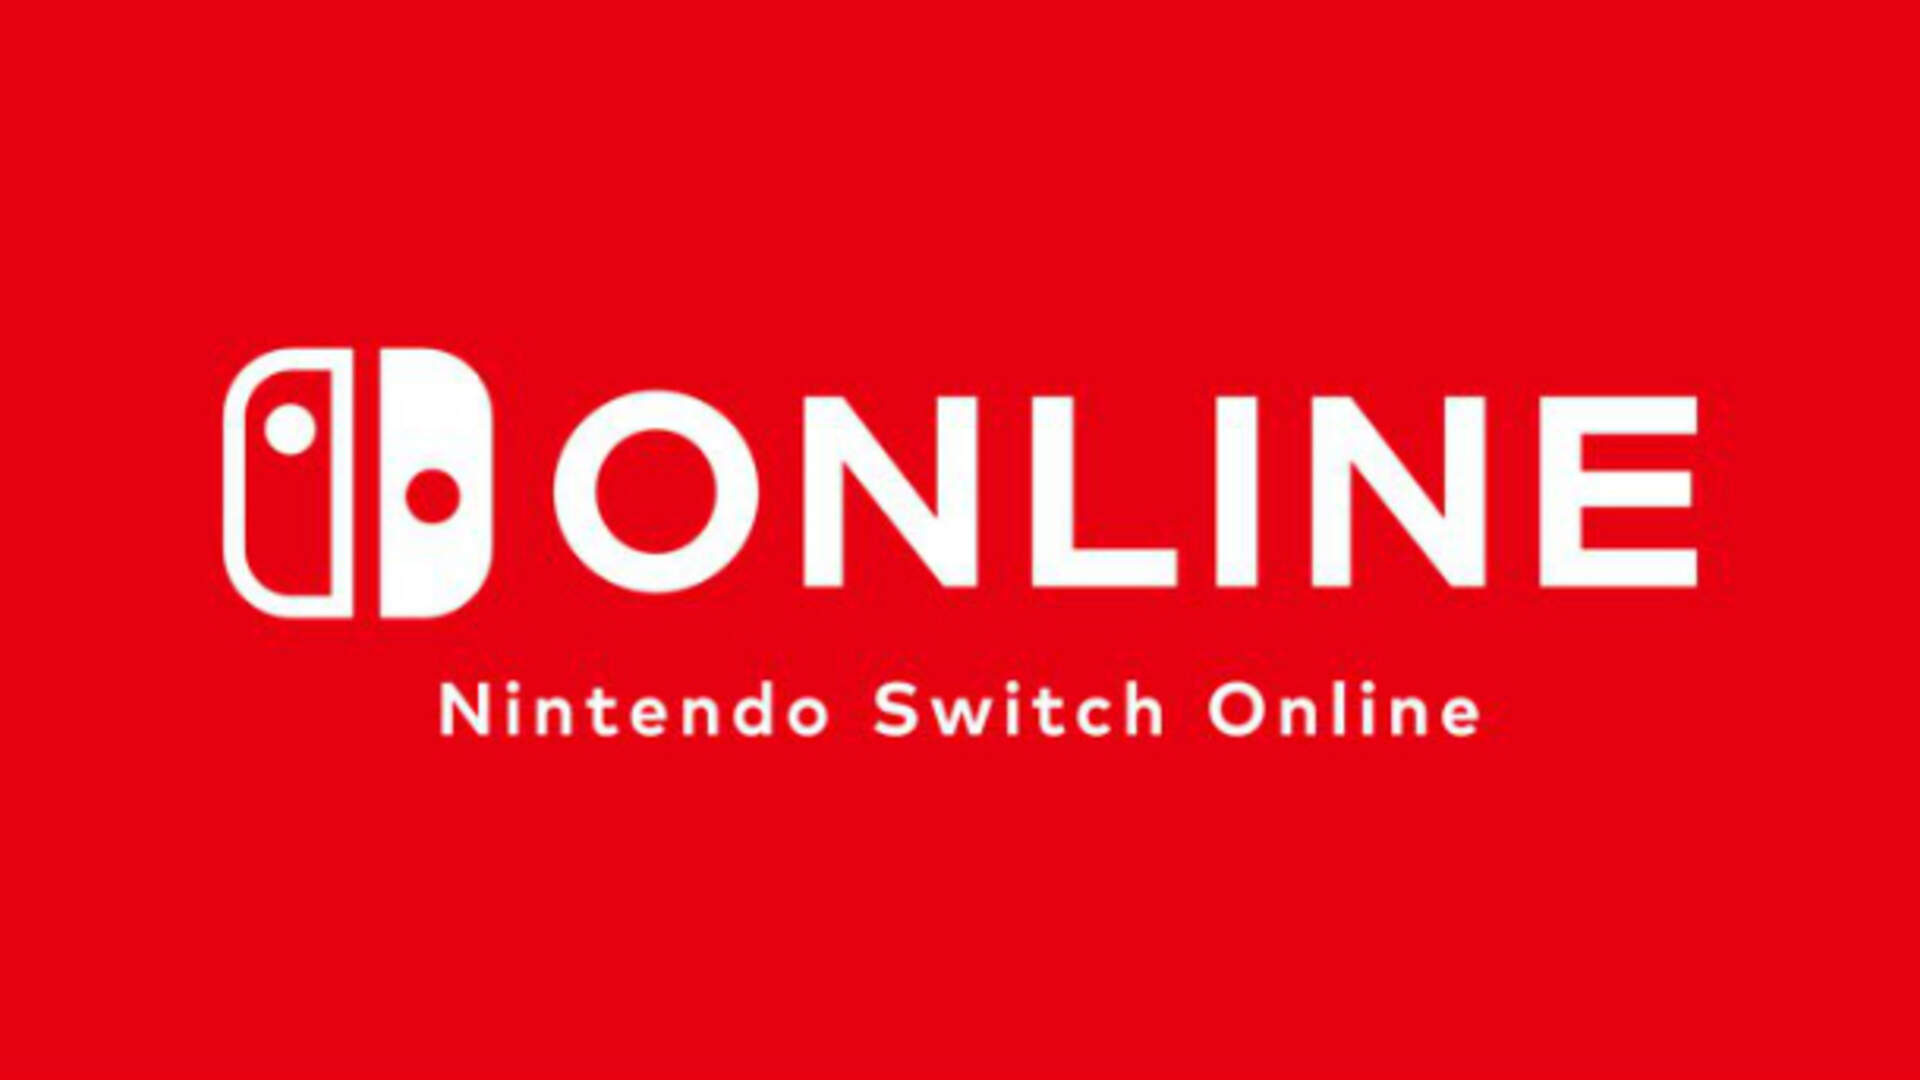 Nintendo Switch Online Offers Cloud Storage for Save Data Backup, Details Here